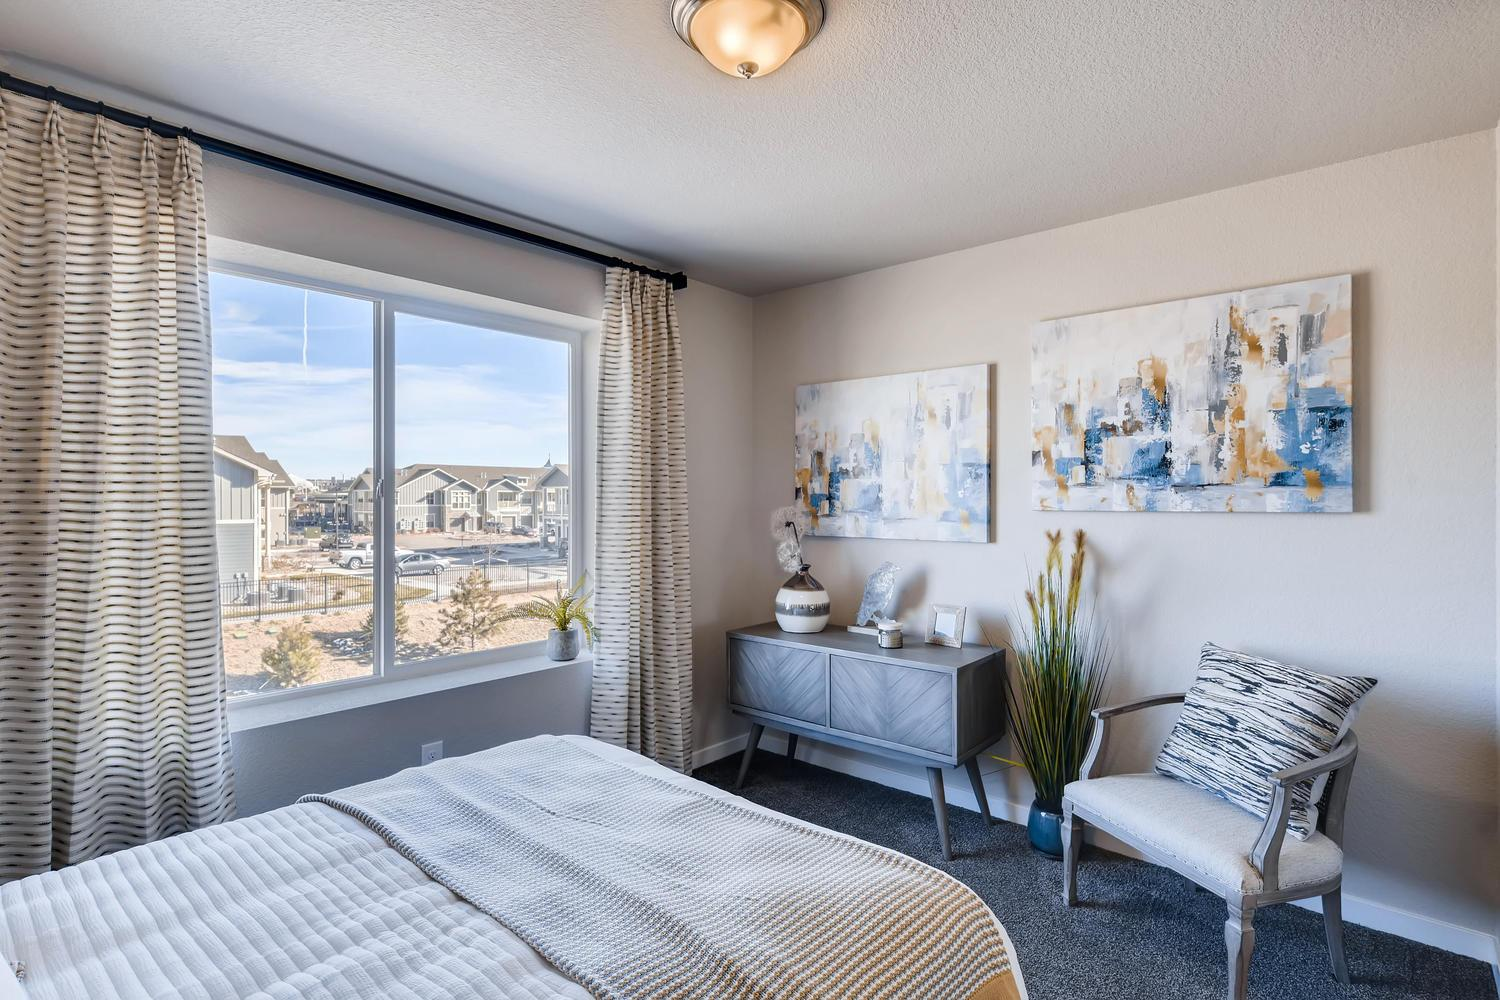 Bedroom featured in the 221 By Classic Homes in Colorado Springs, CO